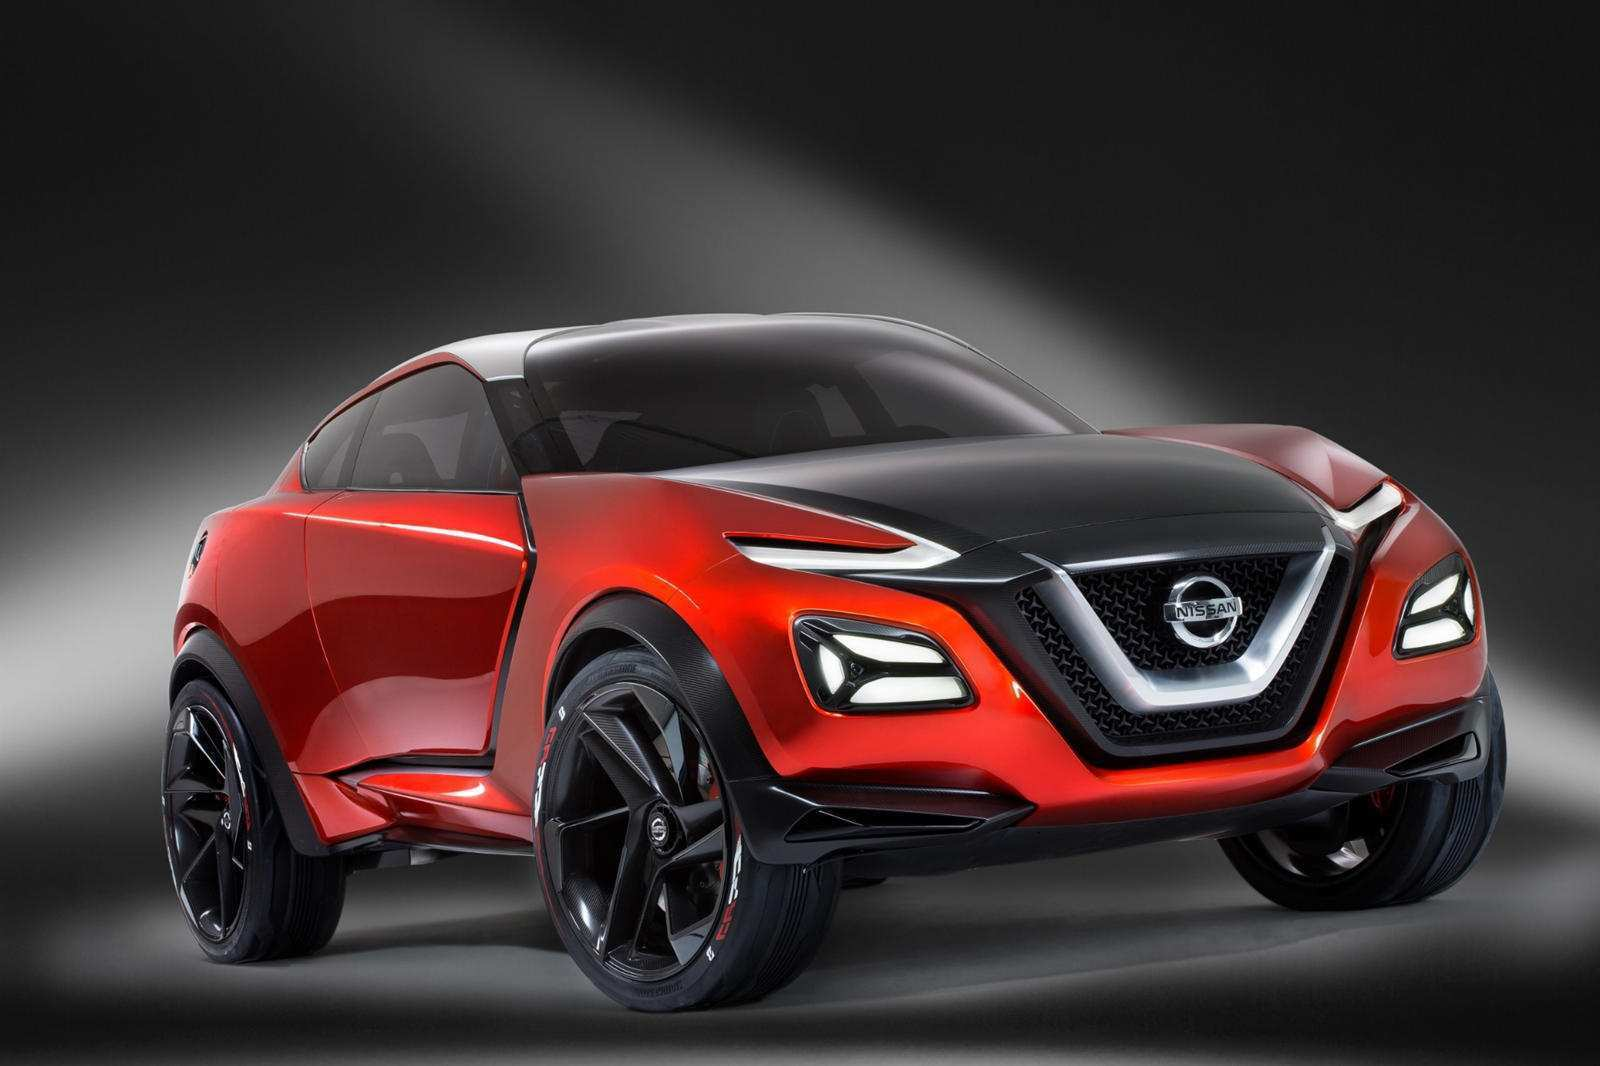 83 Concept of 2020 Nissan Juke Redesign for 2020 Nissan Juke